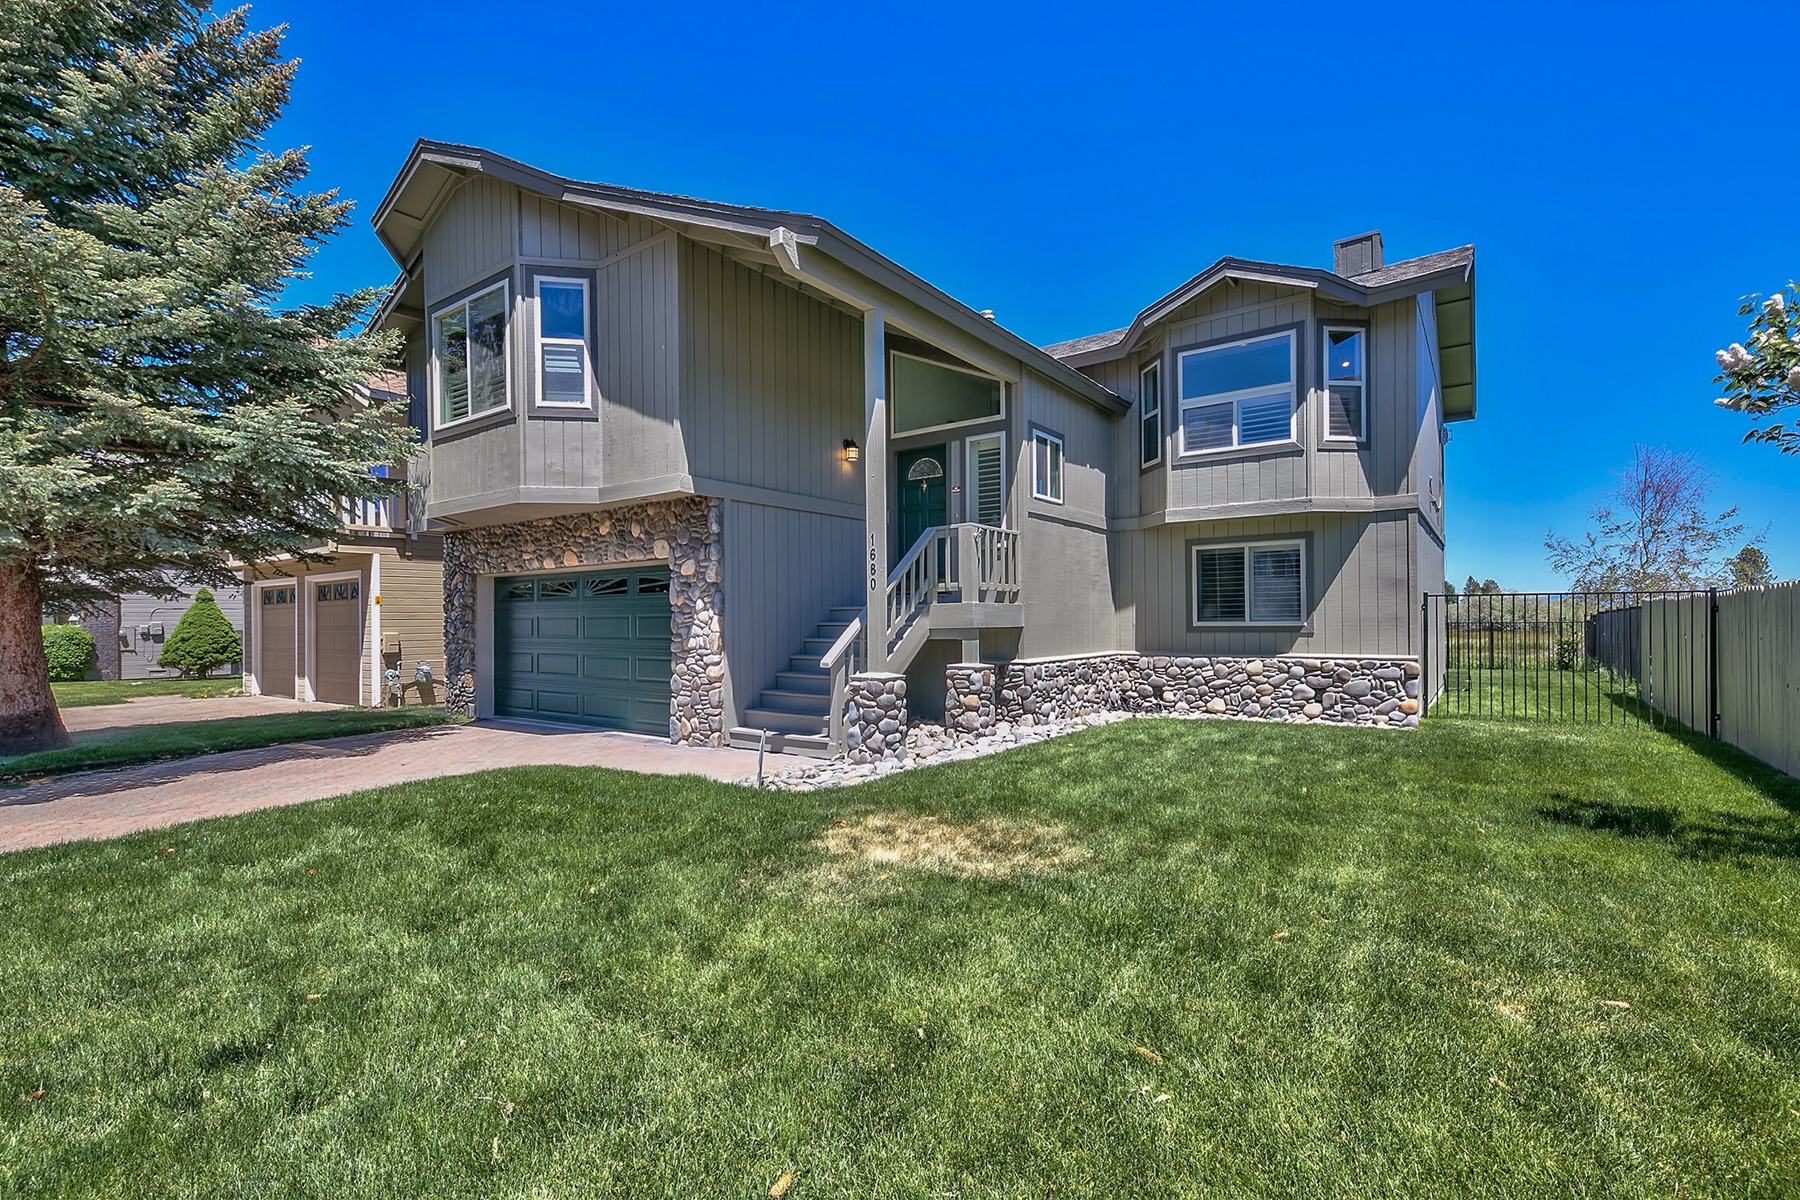 Single Family Home for Active at 1680 Venice Drive, South Lake Tahoe Ca 96150 1680 Venice Drive South Lake Tahoe, California 96150 United States